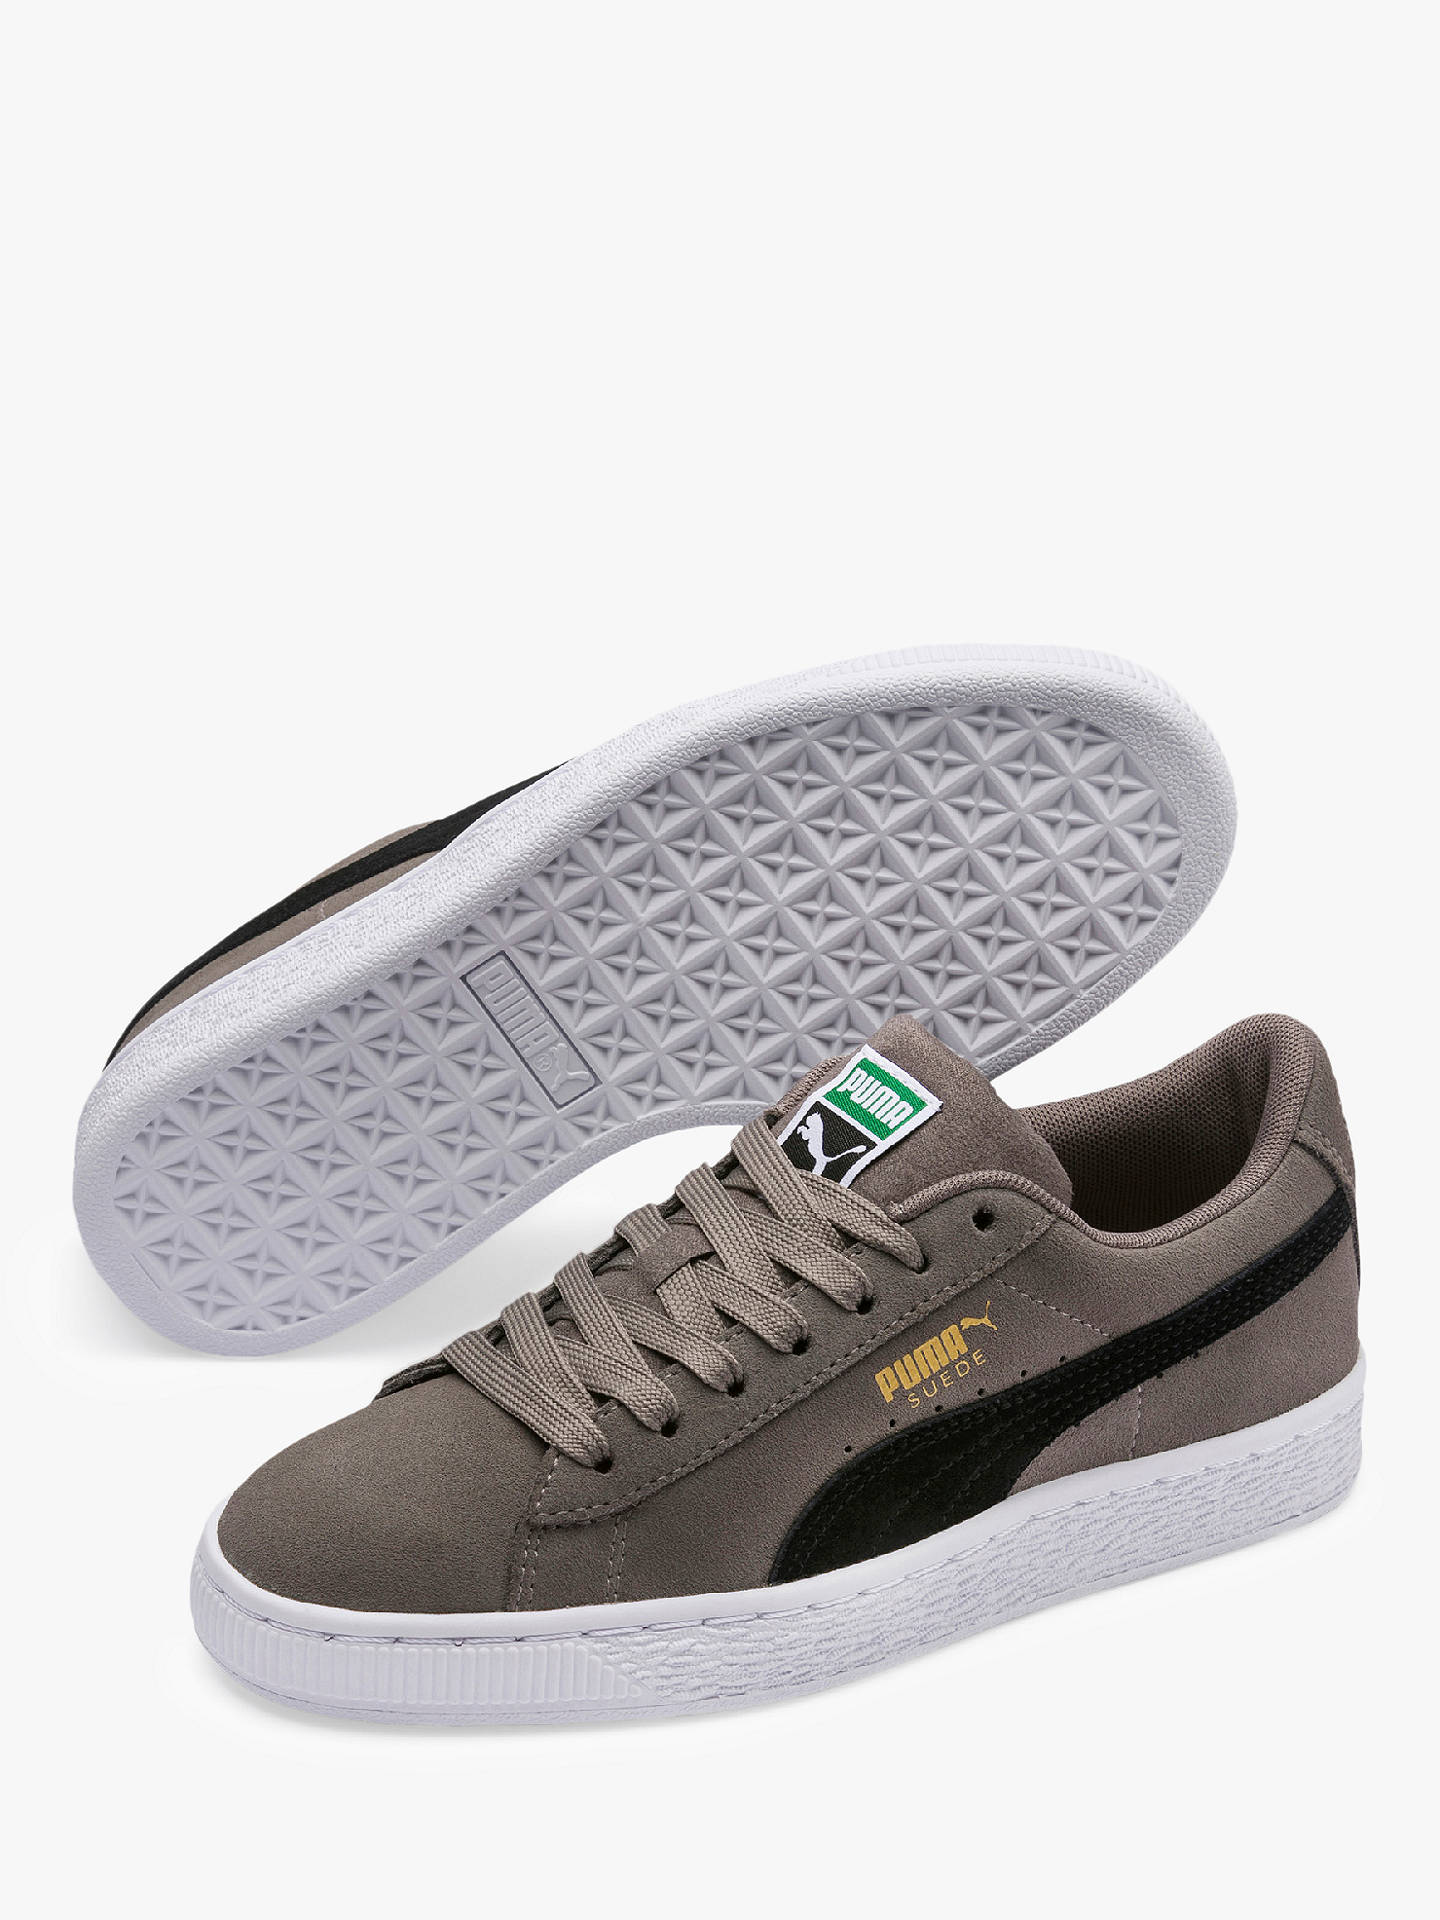 d7fb954efe40 PUMA Children s Suede Classic Trainers at John Lewis   Partners